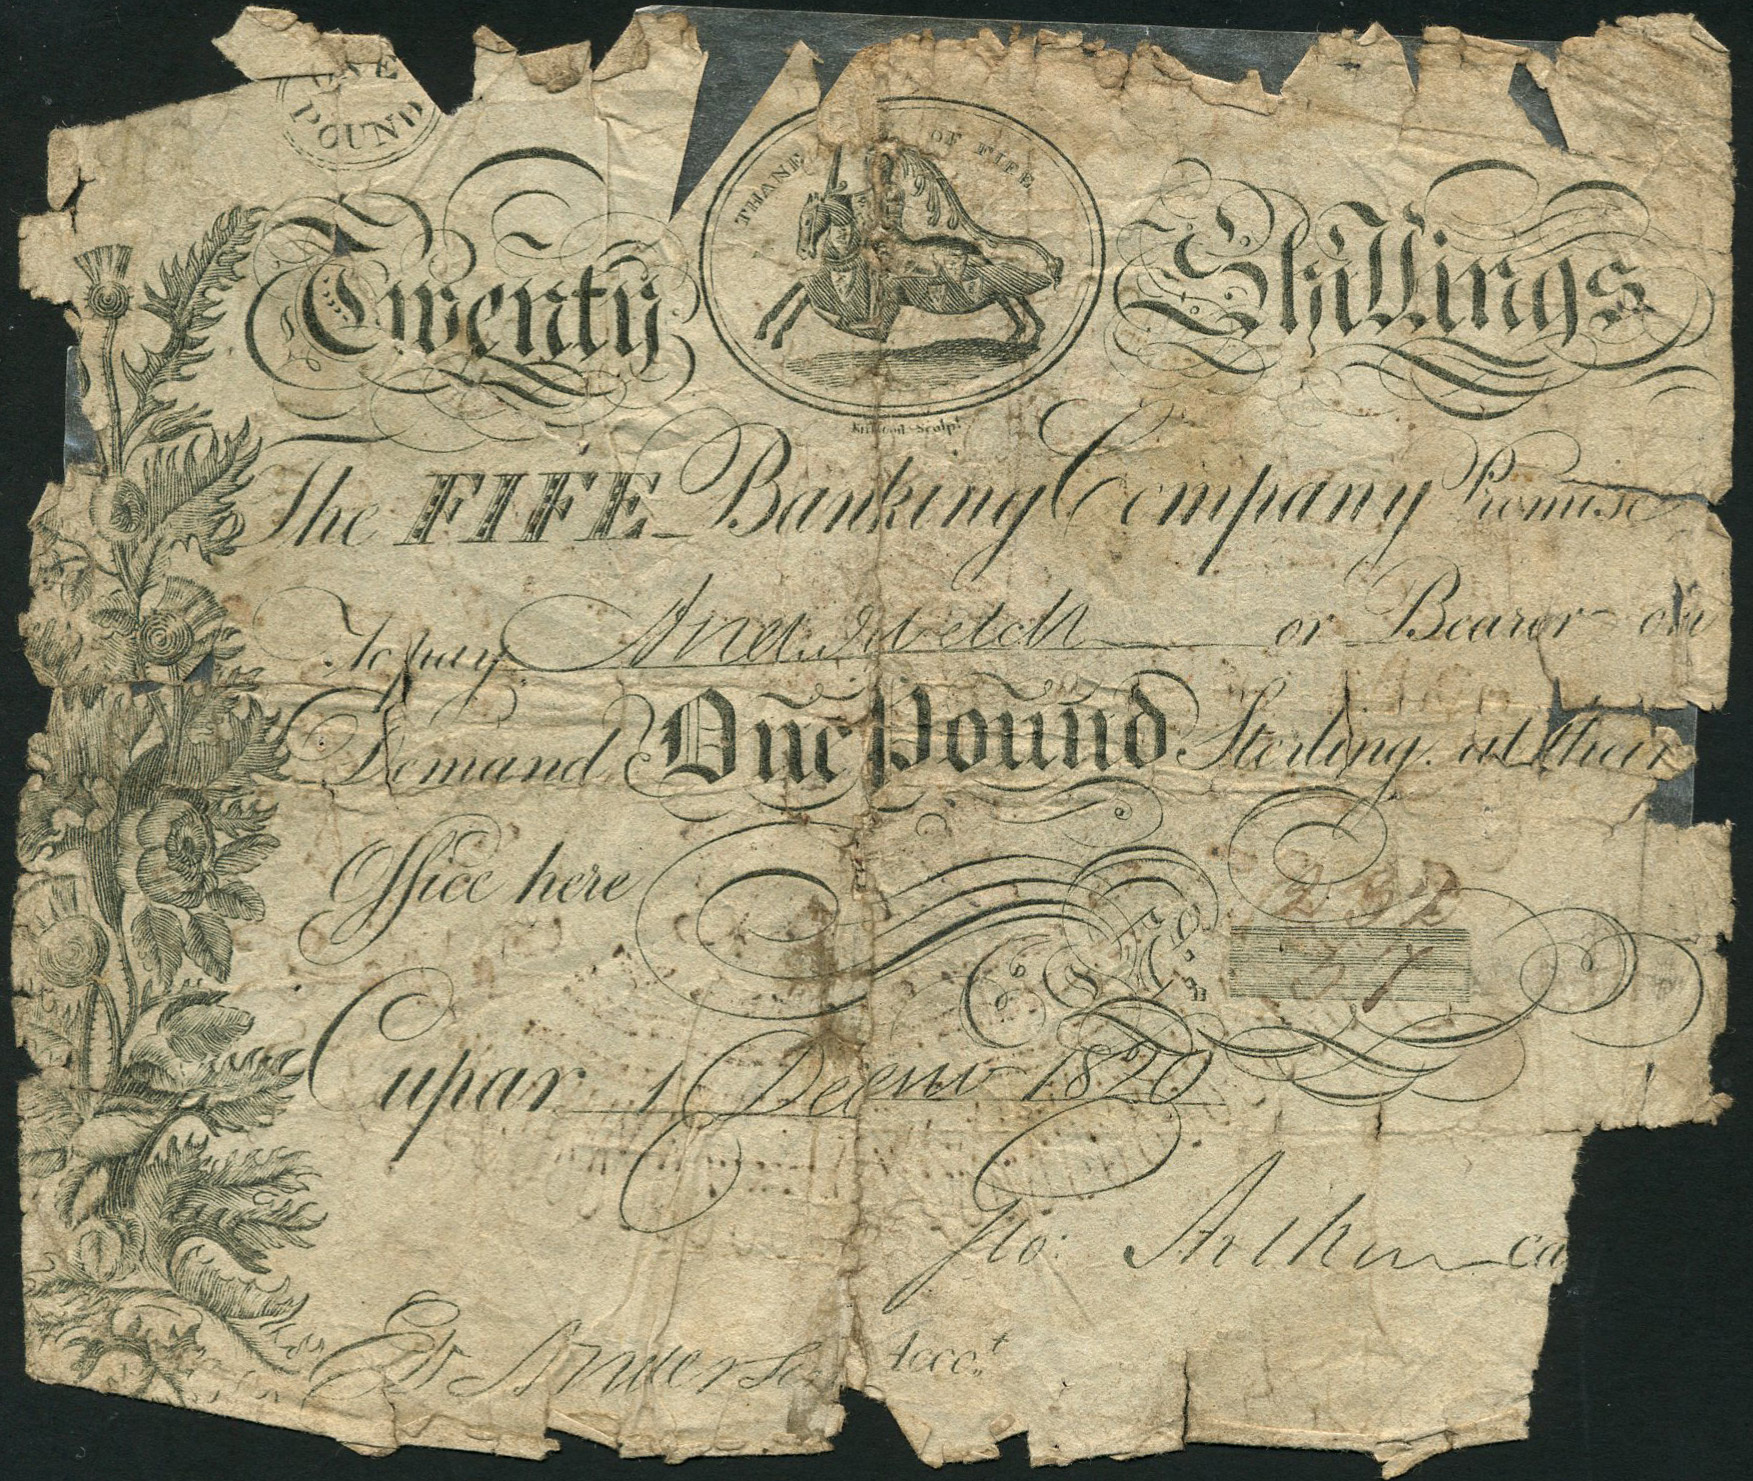 Fife Banking Company one pound note forgery, dated December 1, 1820 and featuring the word 'Cupar' and an image of the Thane of Fife on horseback. Pre-sale estimates are £100-£150